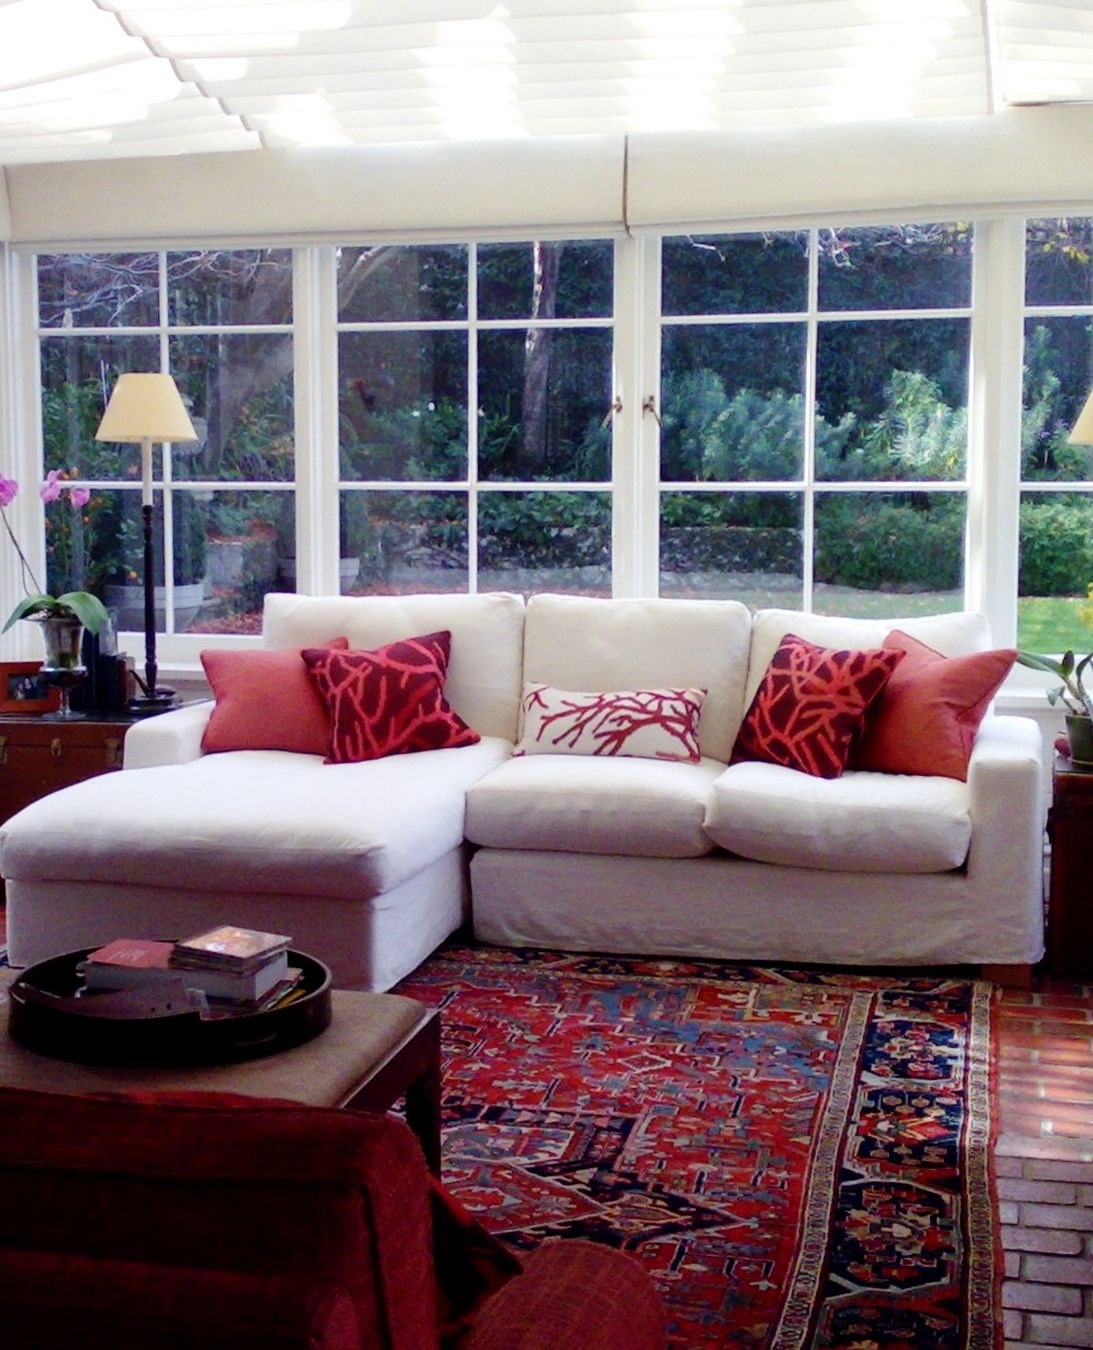 Ruby Red Decor Accents Living The Dream Red Decor Accents Red Decor Home